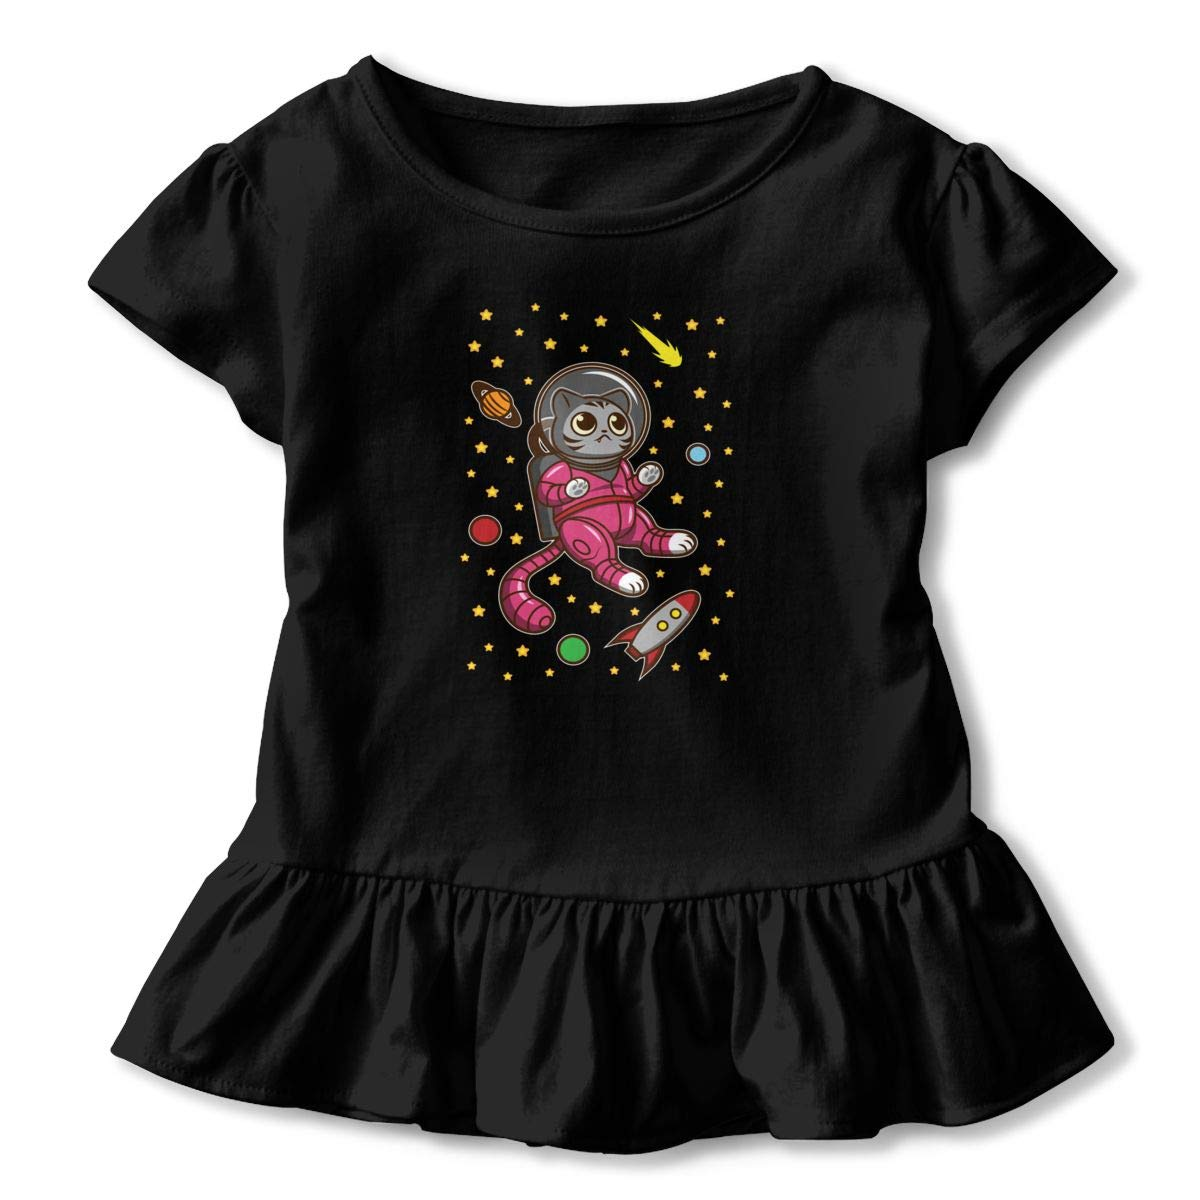 Cat in Space2-6t Flounce Girls Short Sleeve Printed T-shirtame